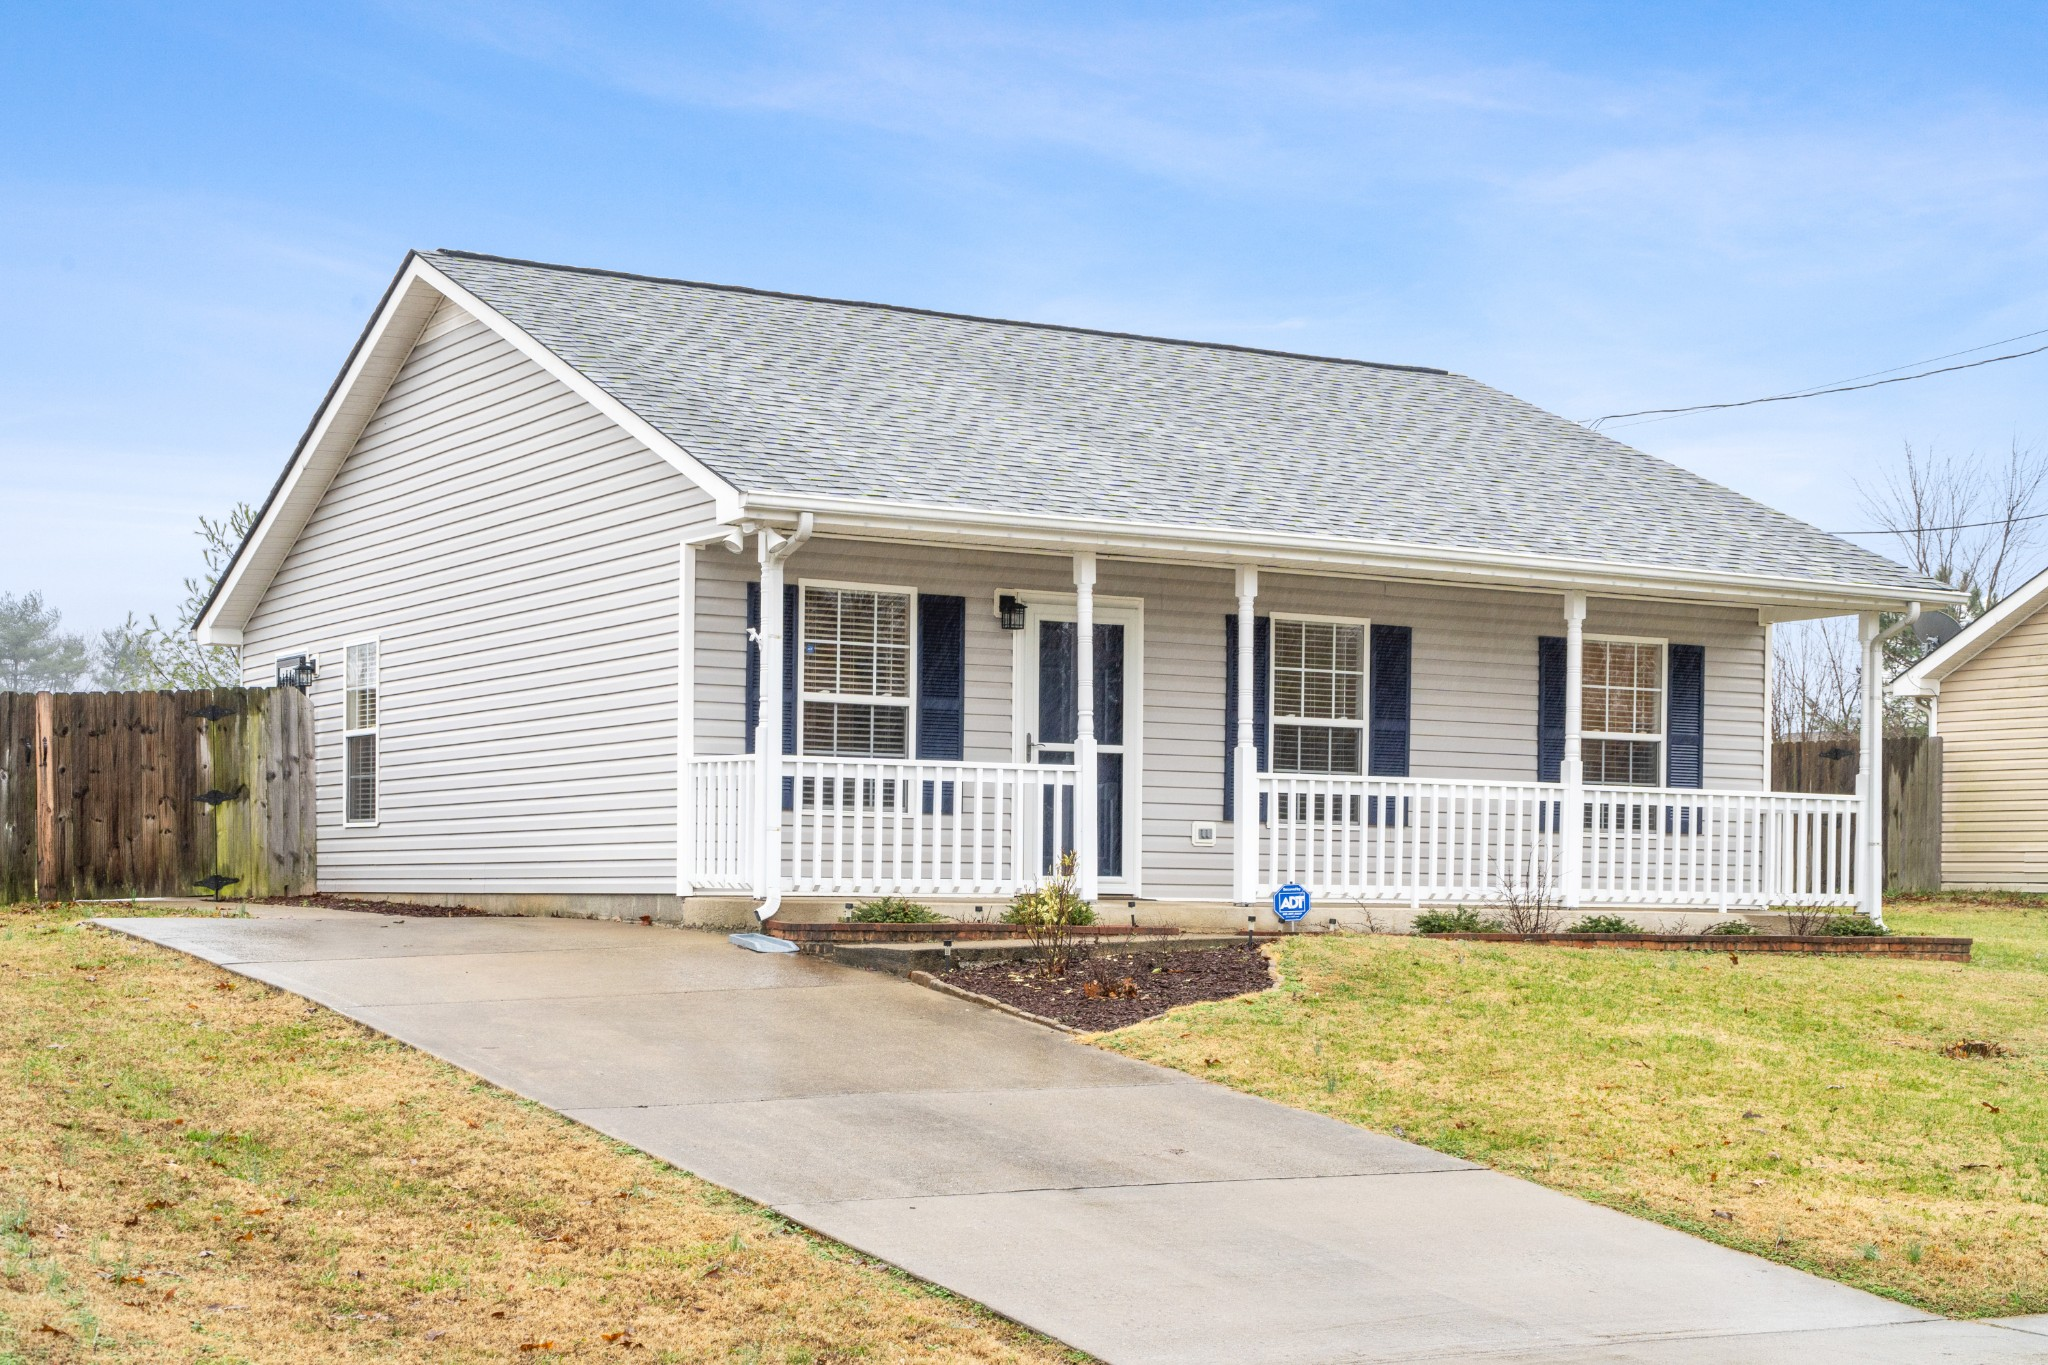 Homes for Sale in Copeland Village Subdivision Clarksville TN 37040